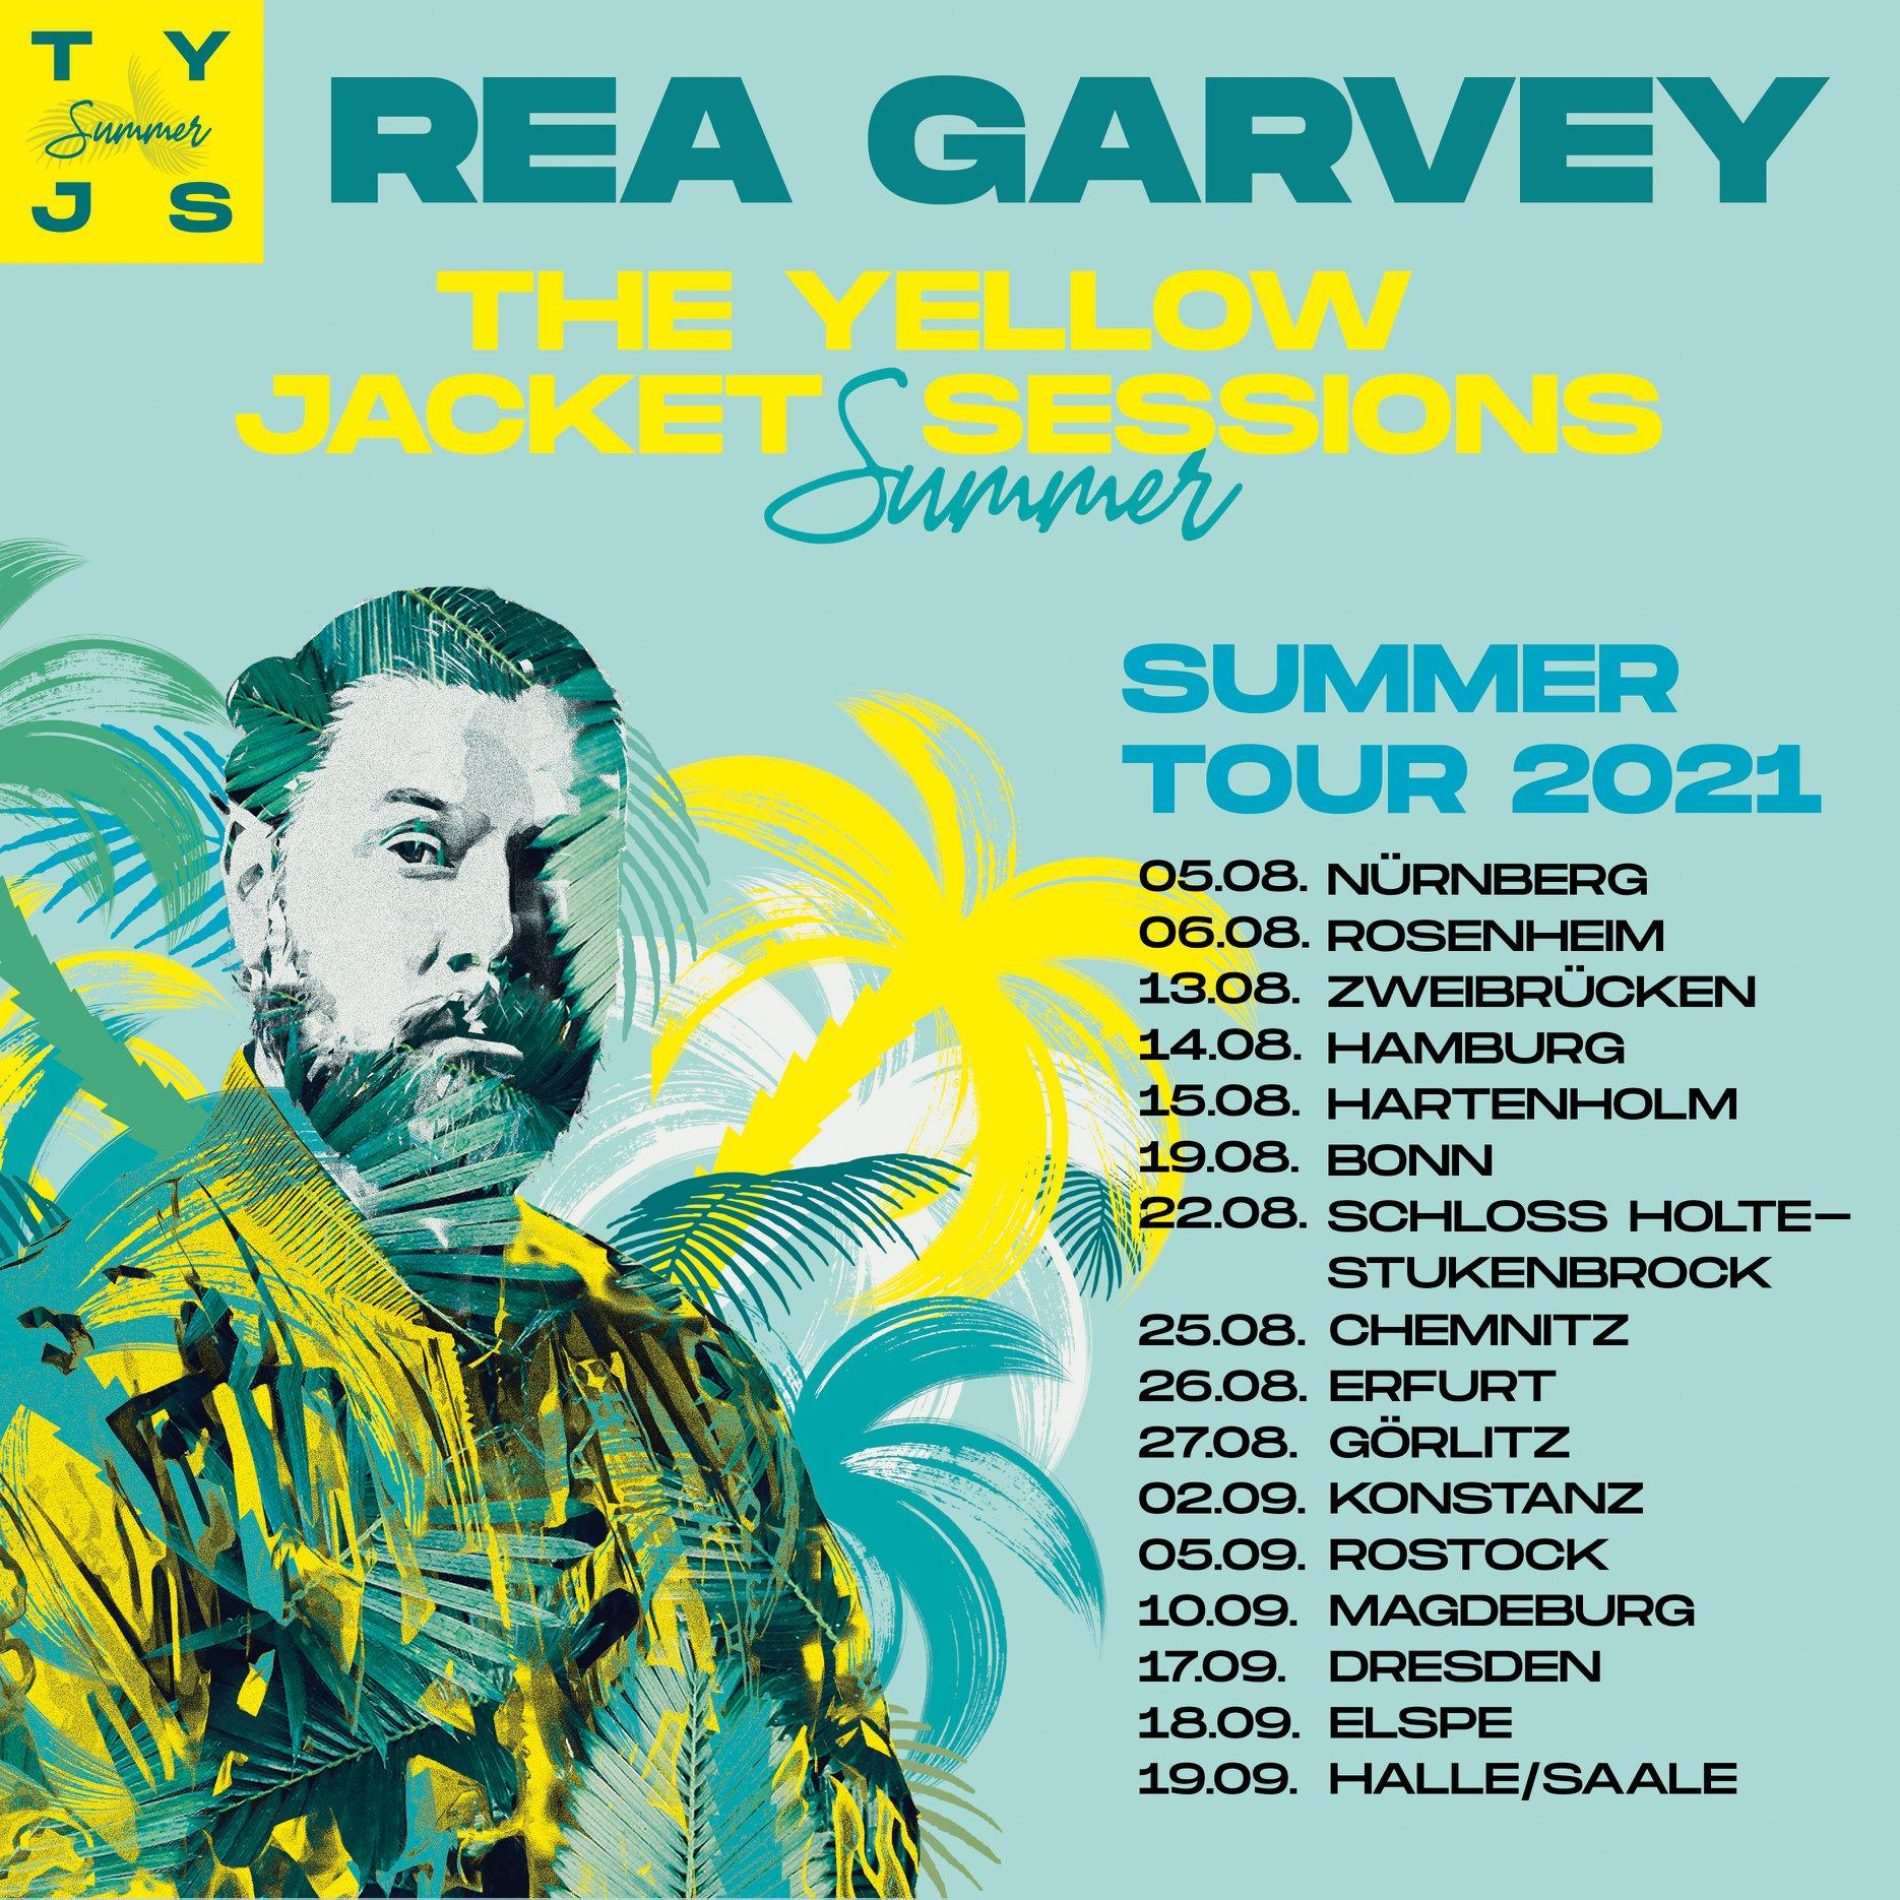 Rea Garvey – THE YELLOW JACKET SUMMER SESSIONS 2021